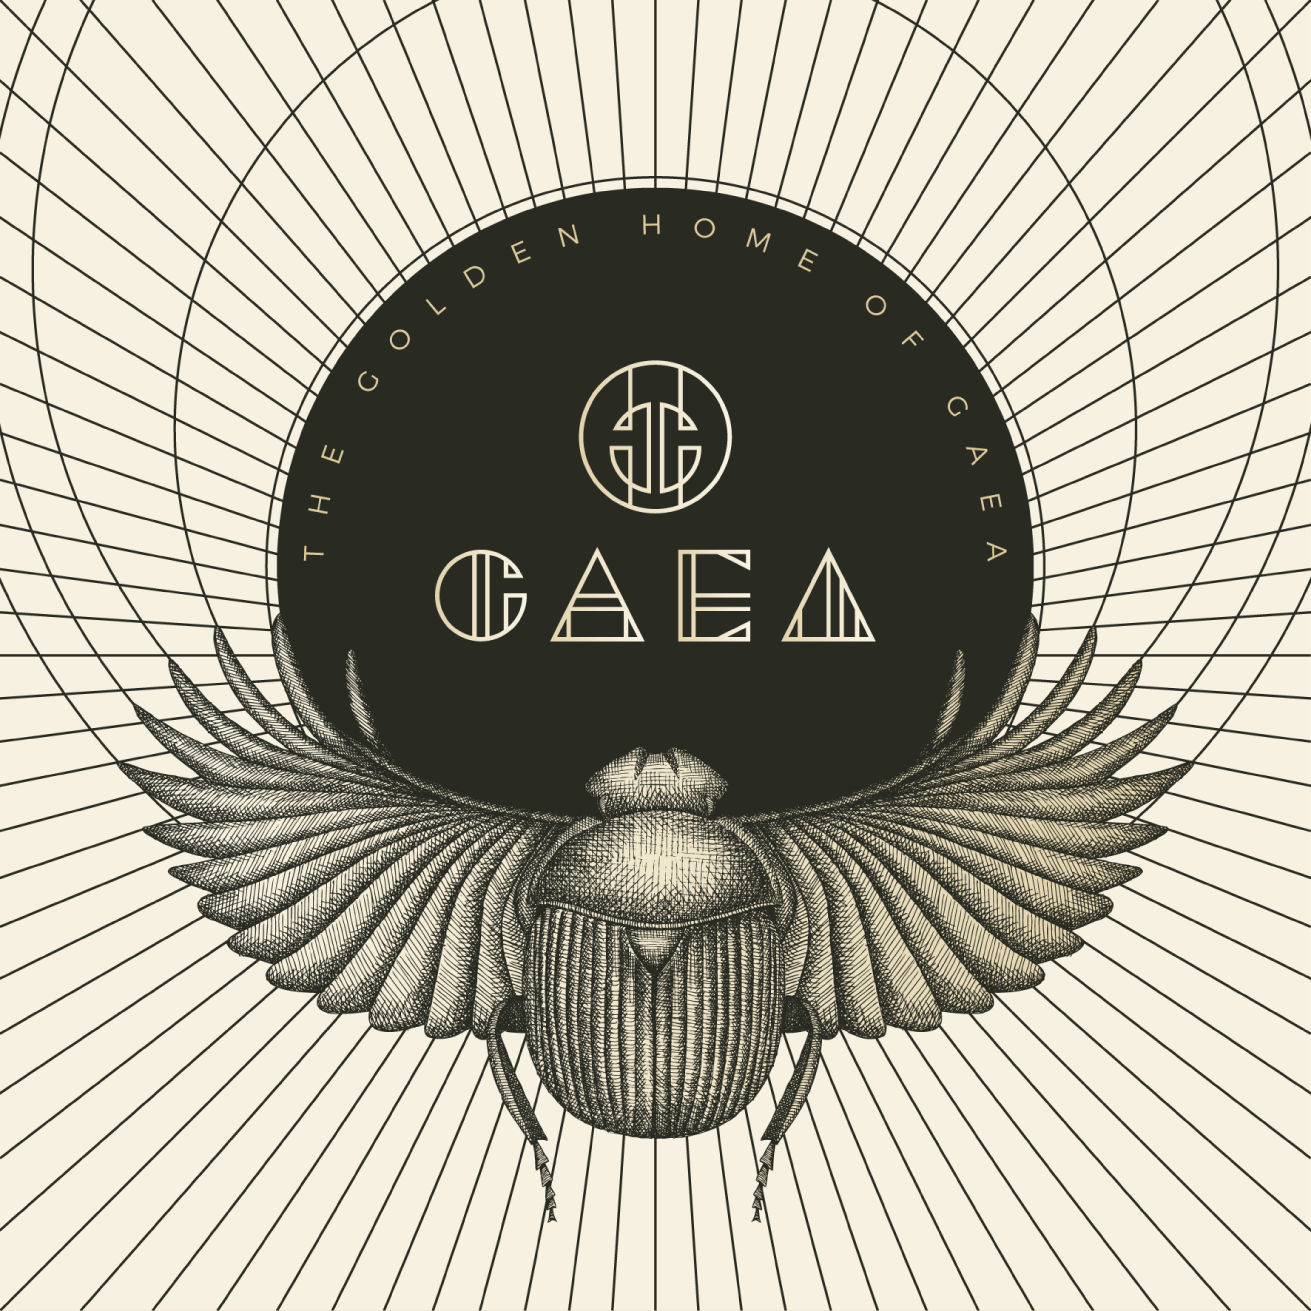 Complete branding design for Gaea fashion house